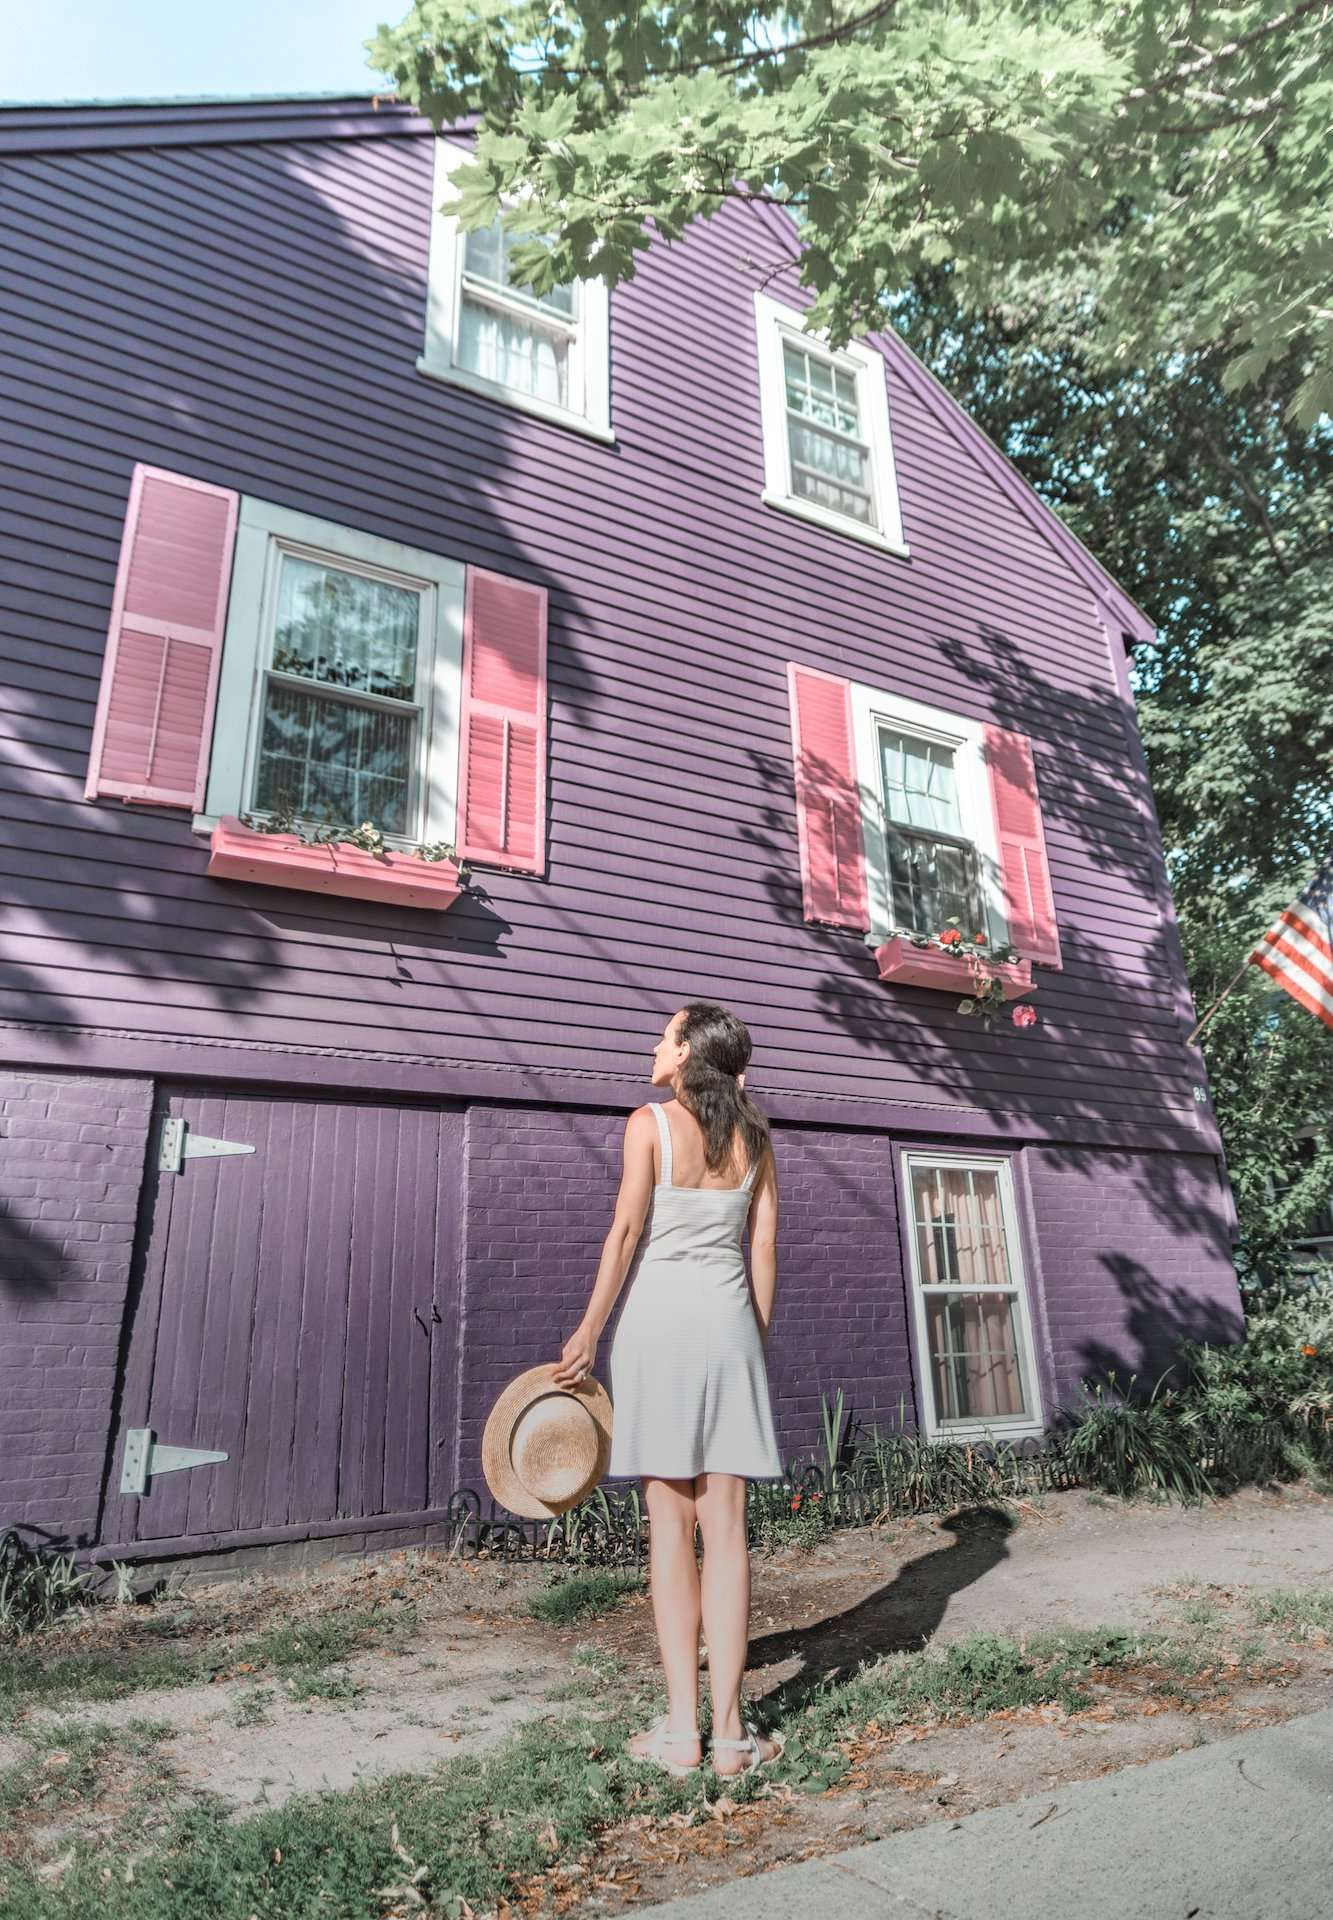 Purple house in Ipswich, Massachusetts